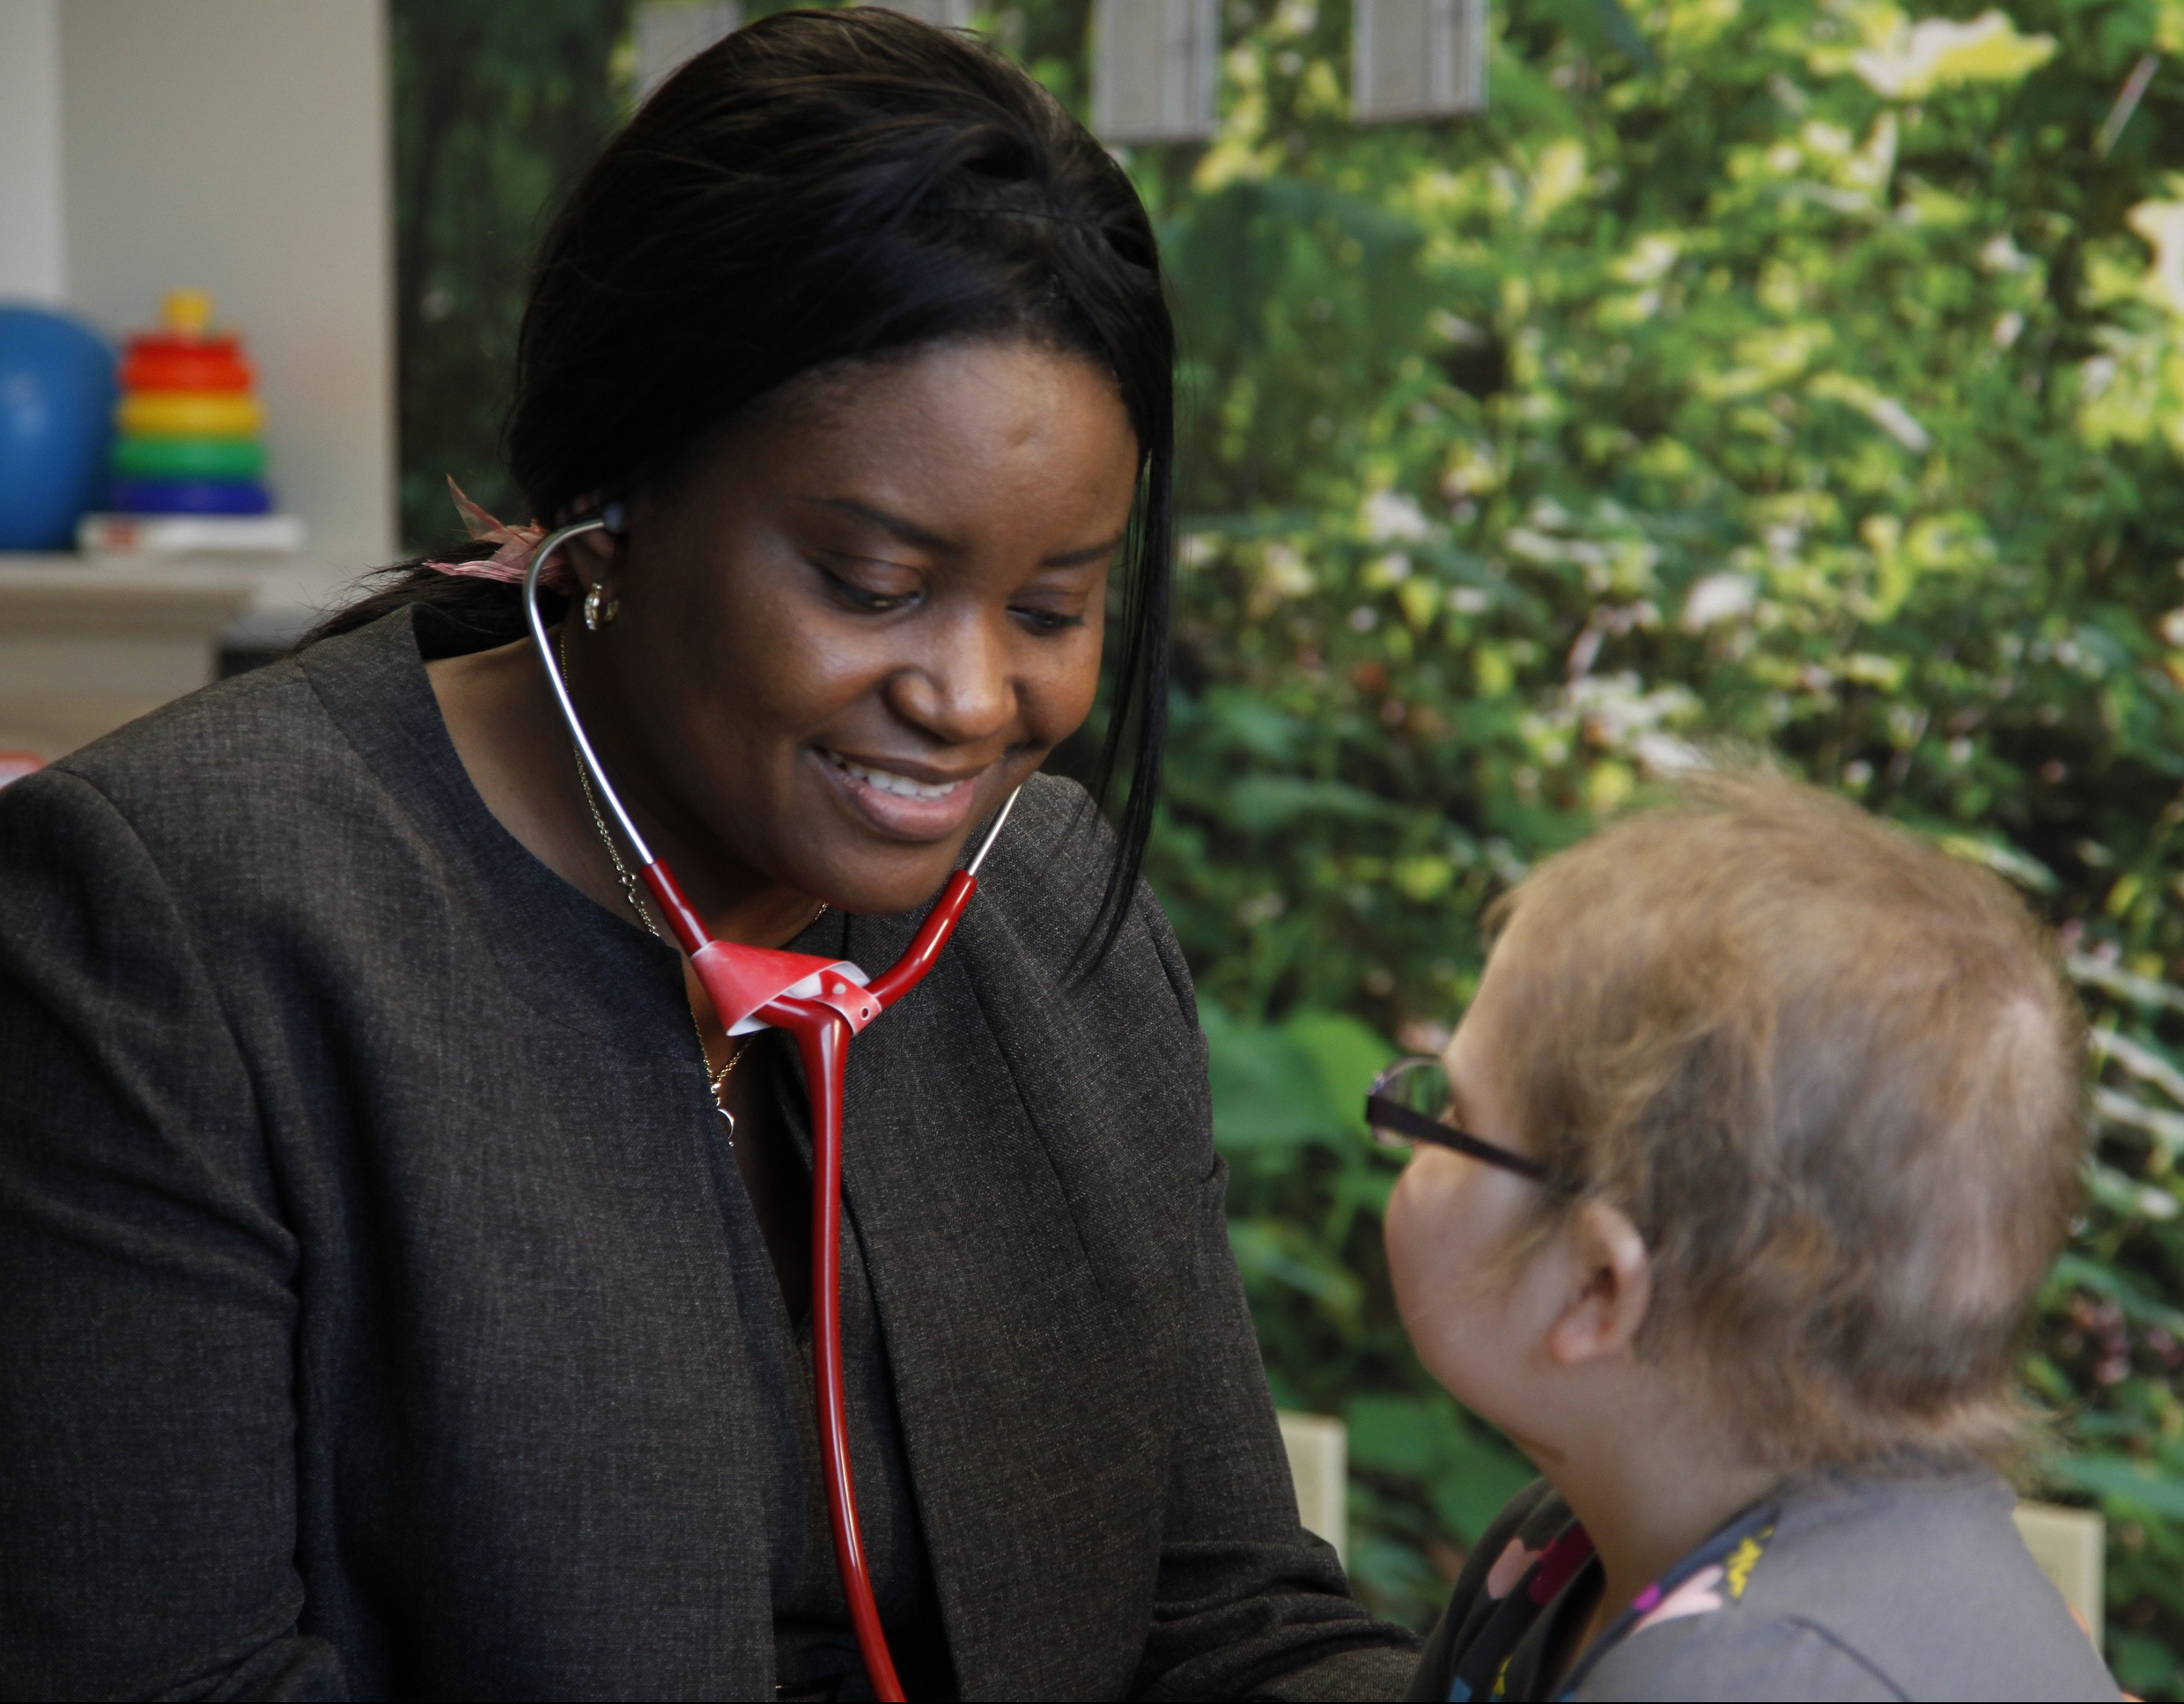 Dr. Francisca Fasipe, Mercy pediatric oncologist/hematologist, examines a patient. Mercy Springfield has a variety of local specialists, including dozens of pediatric subspecialists, who will be in-network for some Anthem Blue Cross and Blue Shield plans starting Jan. 1, 2018.